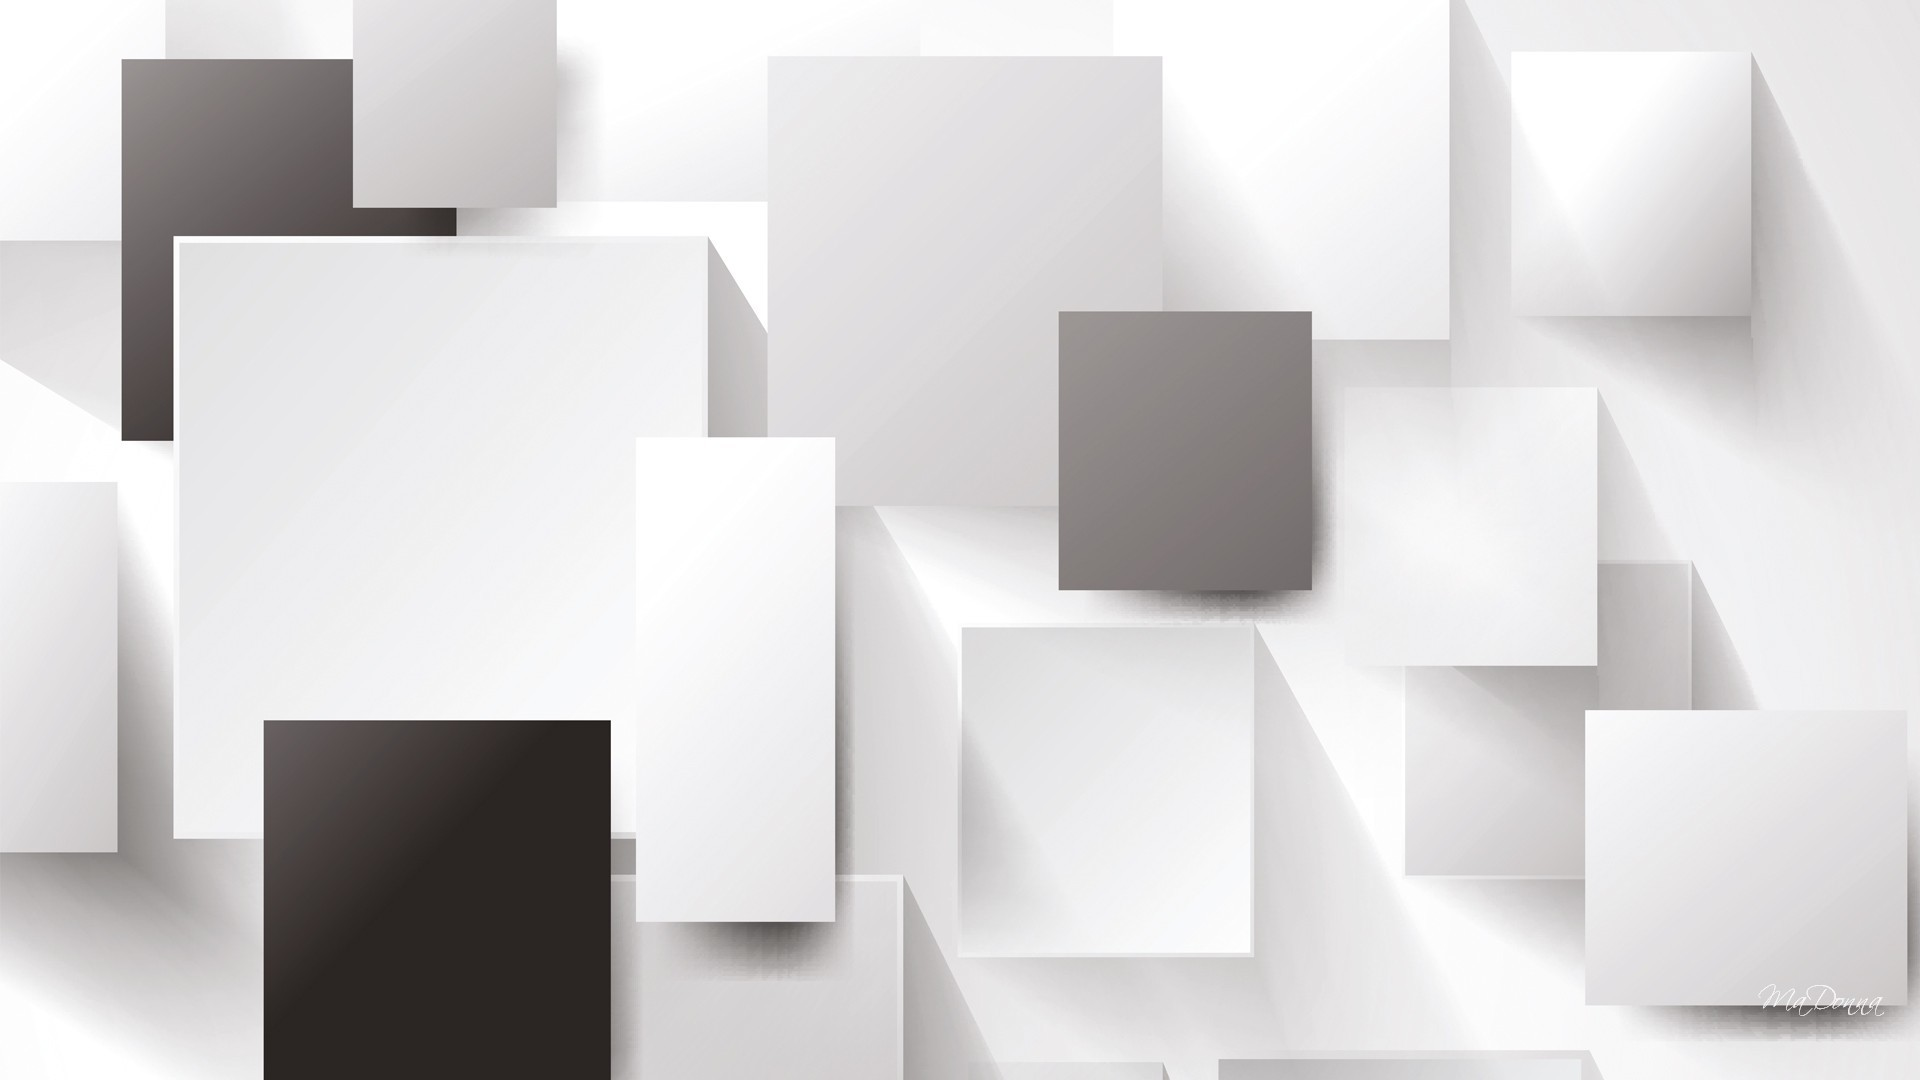 White Abstract Wallpaper For Android #sfh • Abstract at ngepLuk.com